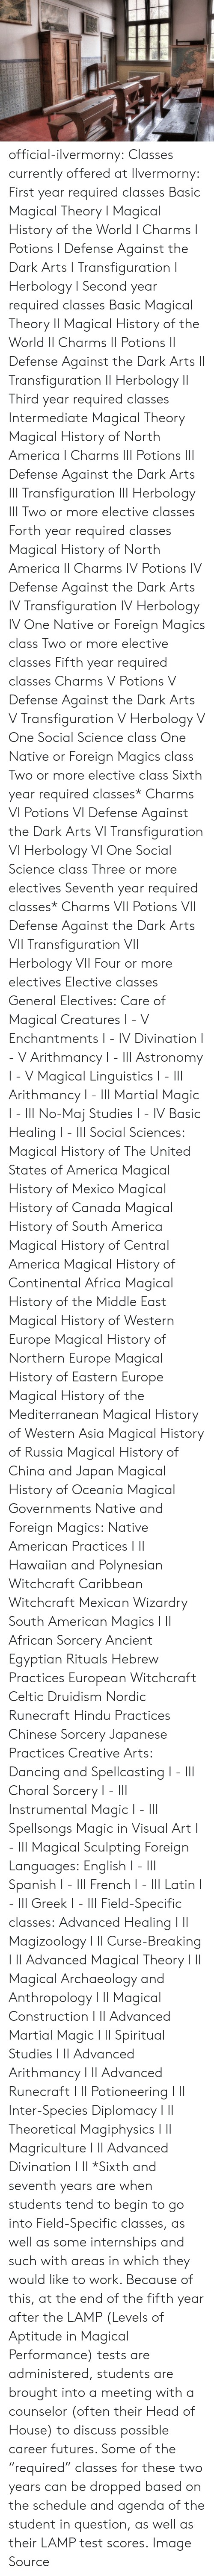 Africa, America, and Celtic: official-ilvermorny:  Classes currently offered at Ilvermorny:  First year required classes  Basic Magical Theory I Magical History of the World I Charms I Potions I Defense Against the Dark Arts I Transfiguration I Herbology I   Second year required classes  Basic Magical Theory II Magical History of the World II Charms II Potions II Defense Against the Dark Arts II Transfiguration II Herbology II  Third year required classes  Intermediate Magical Theory Magical History of North America I Charms III Potions III Defense Against the Dark Arts III Transfiguration III Herbology III Two or more elective classes  Forth year required classes  Magical History of North America II Charms IV Potions IV Defense Against the Dark Arts IV Transfiguration IV Herbology IV One Native or Foreign Magics class Two or more elective classes  Fifth year required classes  Charms V Potions V Defense Against the Dark Arts V Transfiguration V Herbology V One Social Science class One Native or Foreign Magics class Two or more elective class  Sixth year required classes*  Charms VI Potions VI Defense Against the Dark Arts VI Transfiguration VI Herbology VI One Social Science class Three or more electives  Seventh year required classes*  Charms VII Potions VII Defense Against the Dark Arts VII Transfiguration VII Herbology VII Four or more electives  Elective classes  General Electives:  Care of Magical Creatures I - V Enchantments I - IV Divination I - V Arithmancy I - III Astronomy I - V Magical Linguistics I - III Arithmancy I - III Martial Magic I - III No-Maj Studies I - IV Basic Healing I - III  Social Sciences:  Magical History of The United States of America Magical History of Mexico Magical History of Canada Magical History of South America Magical History of Central America Magical History of Continental Africa Magical History of the Middle East Magical History of Western Europe Magical History of Northern Europe Magical History of Eastern Europe Magical Hi